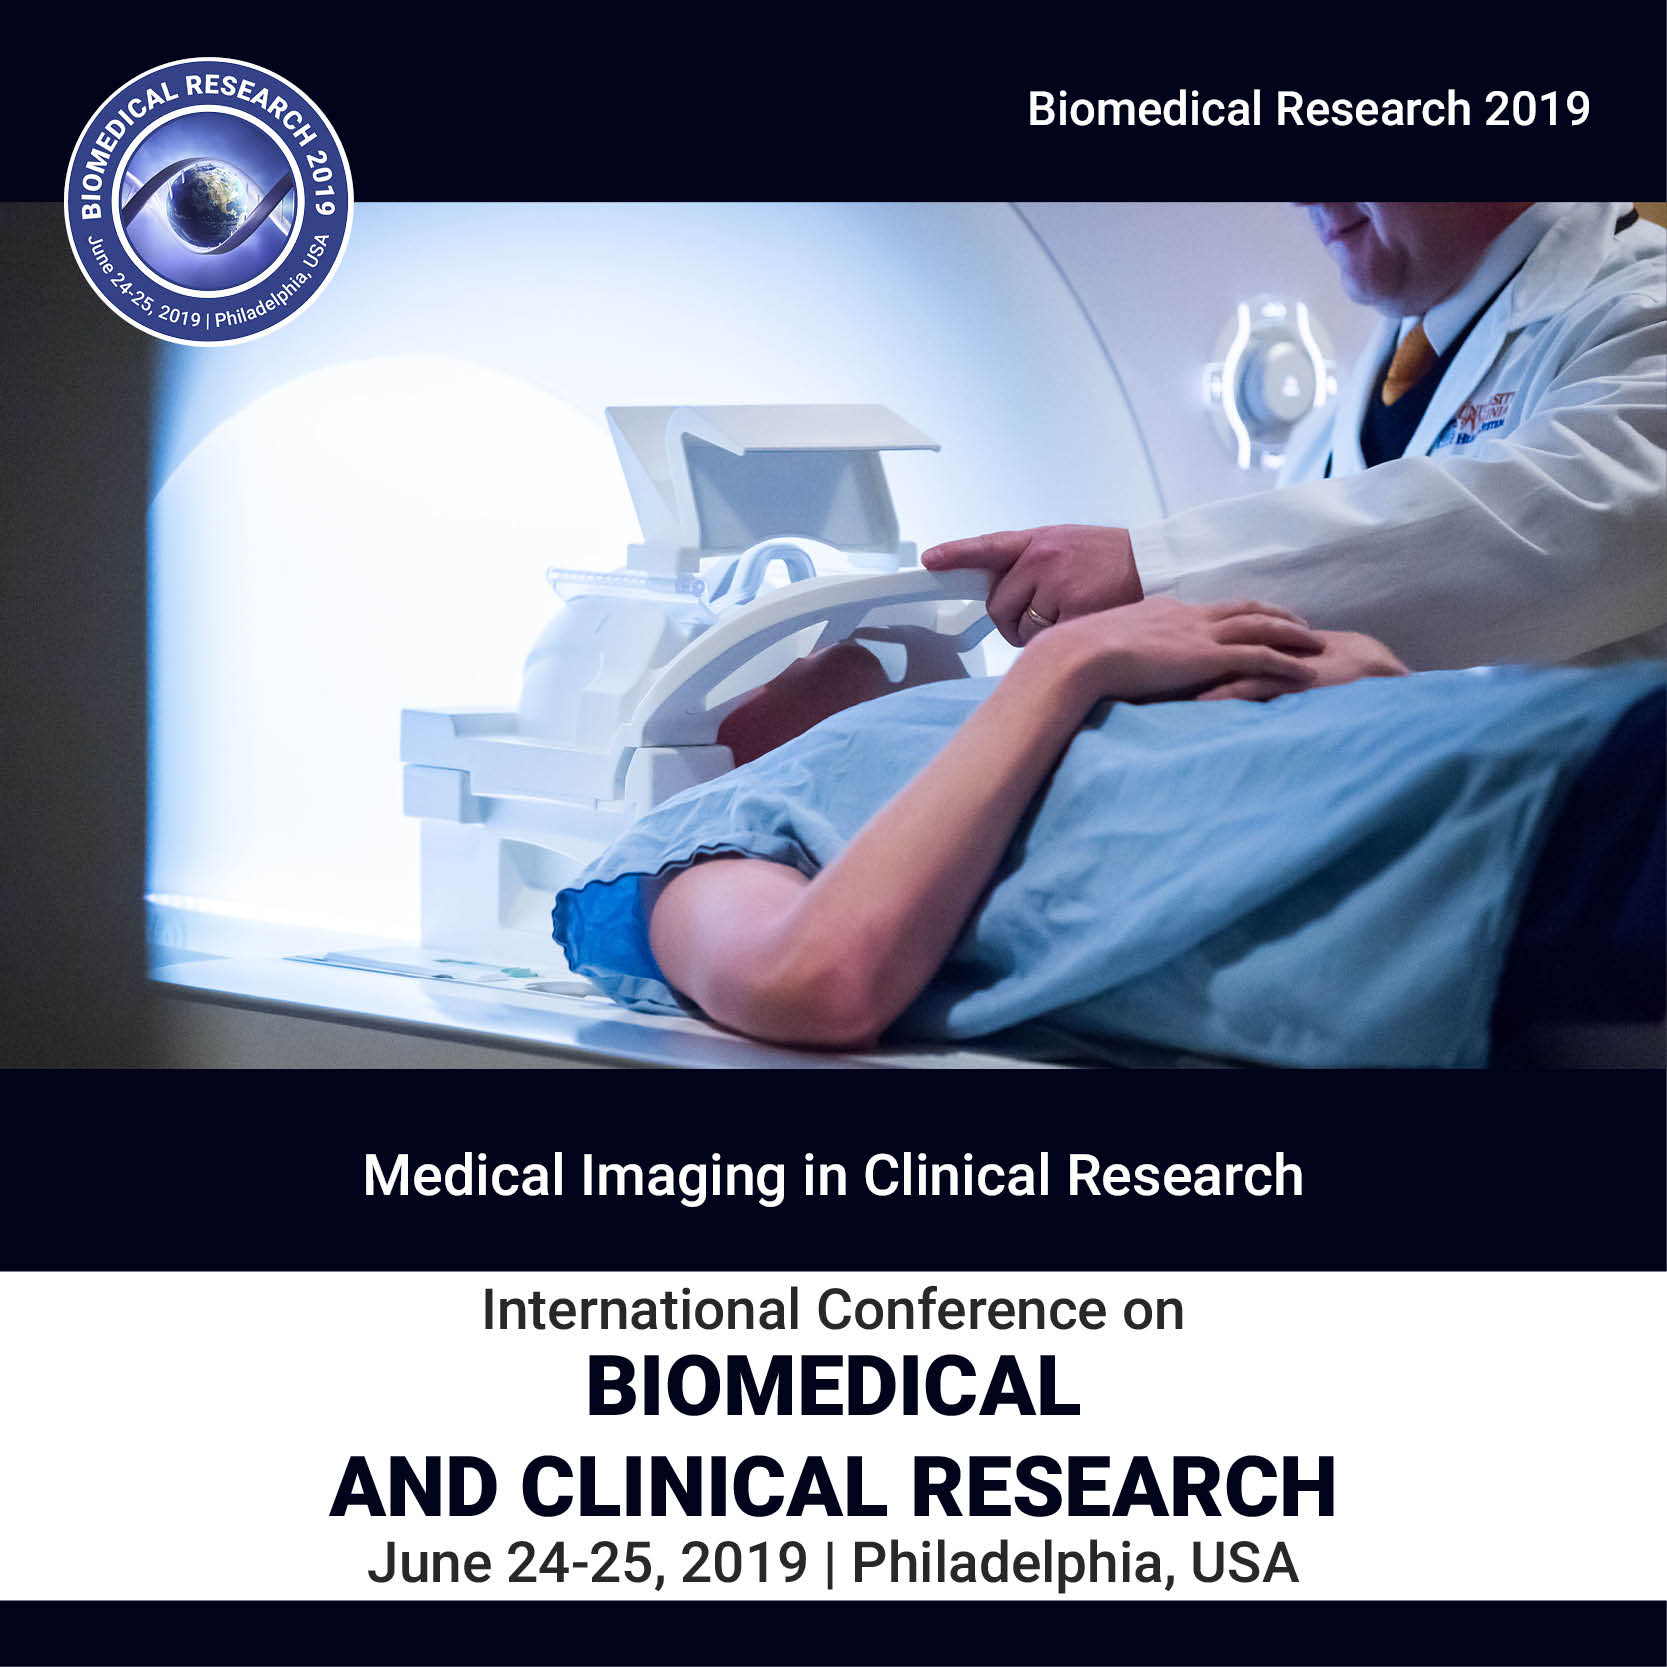 Medical Imaging in Clinical Research Photo